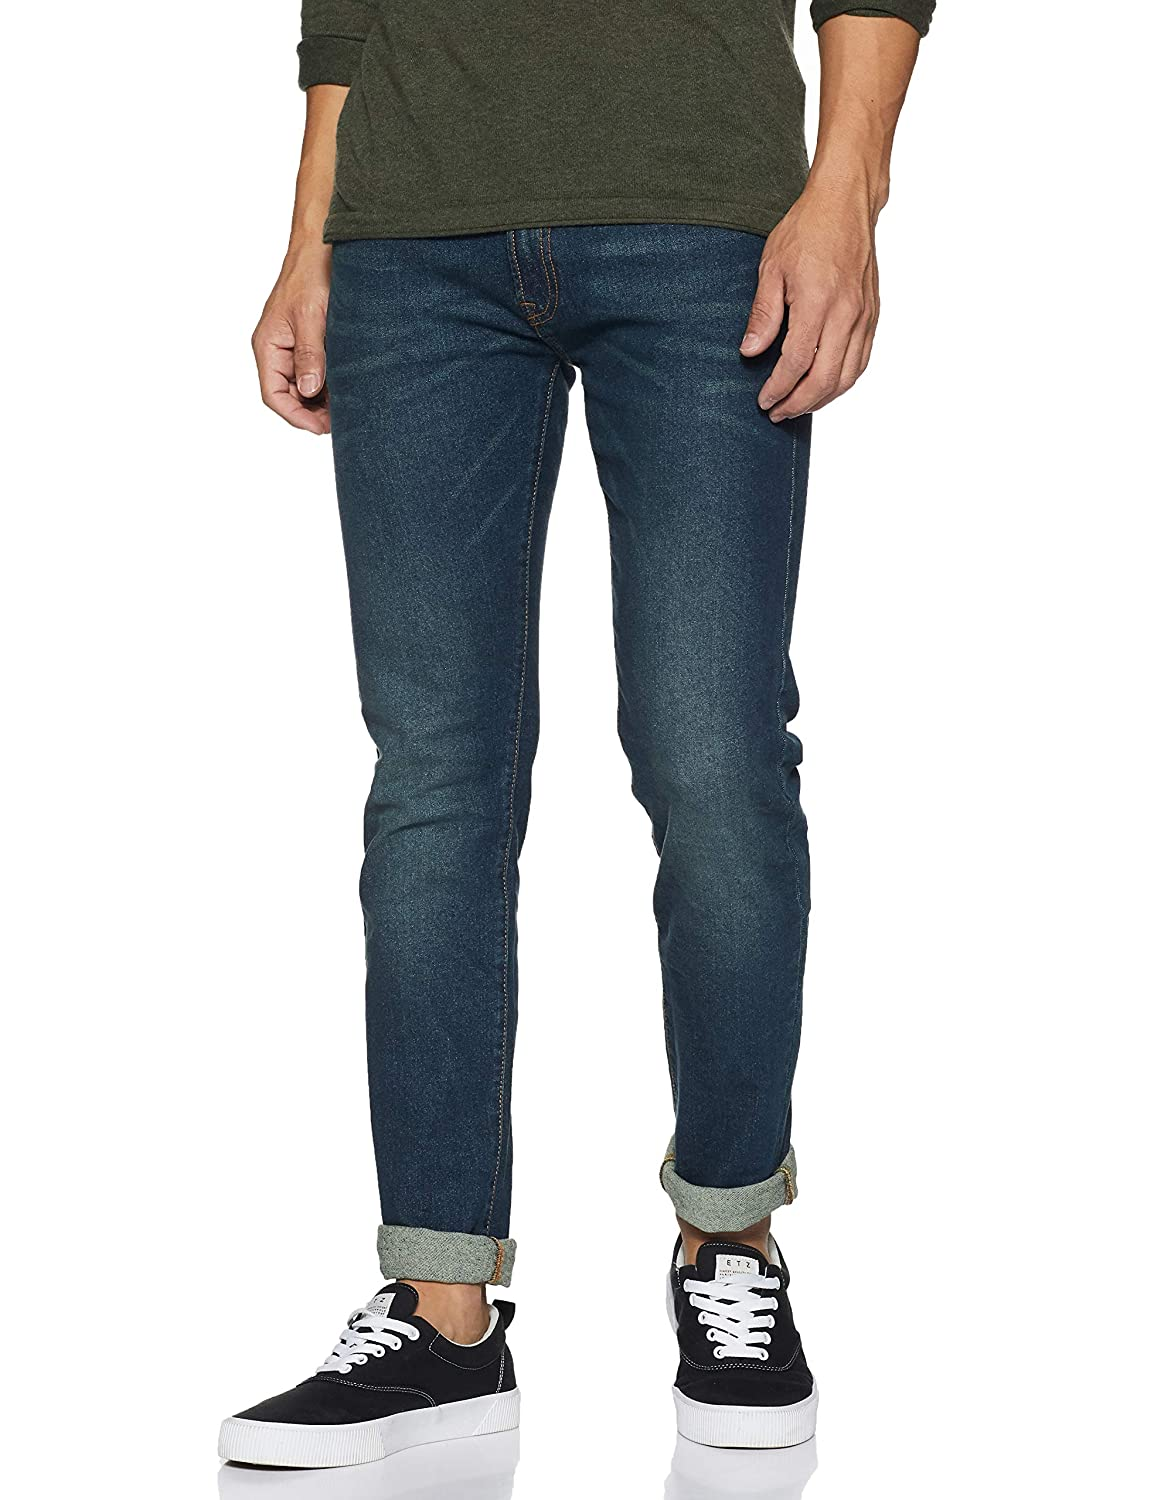 Best Slim Fit Jeans